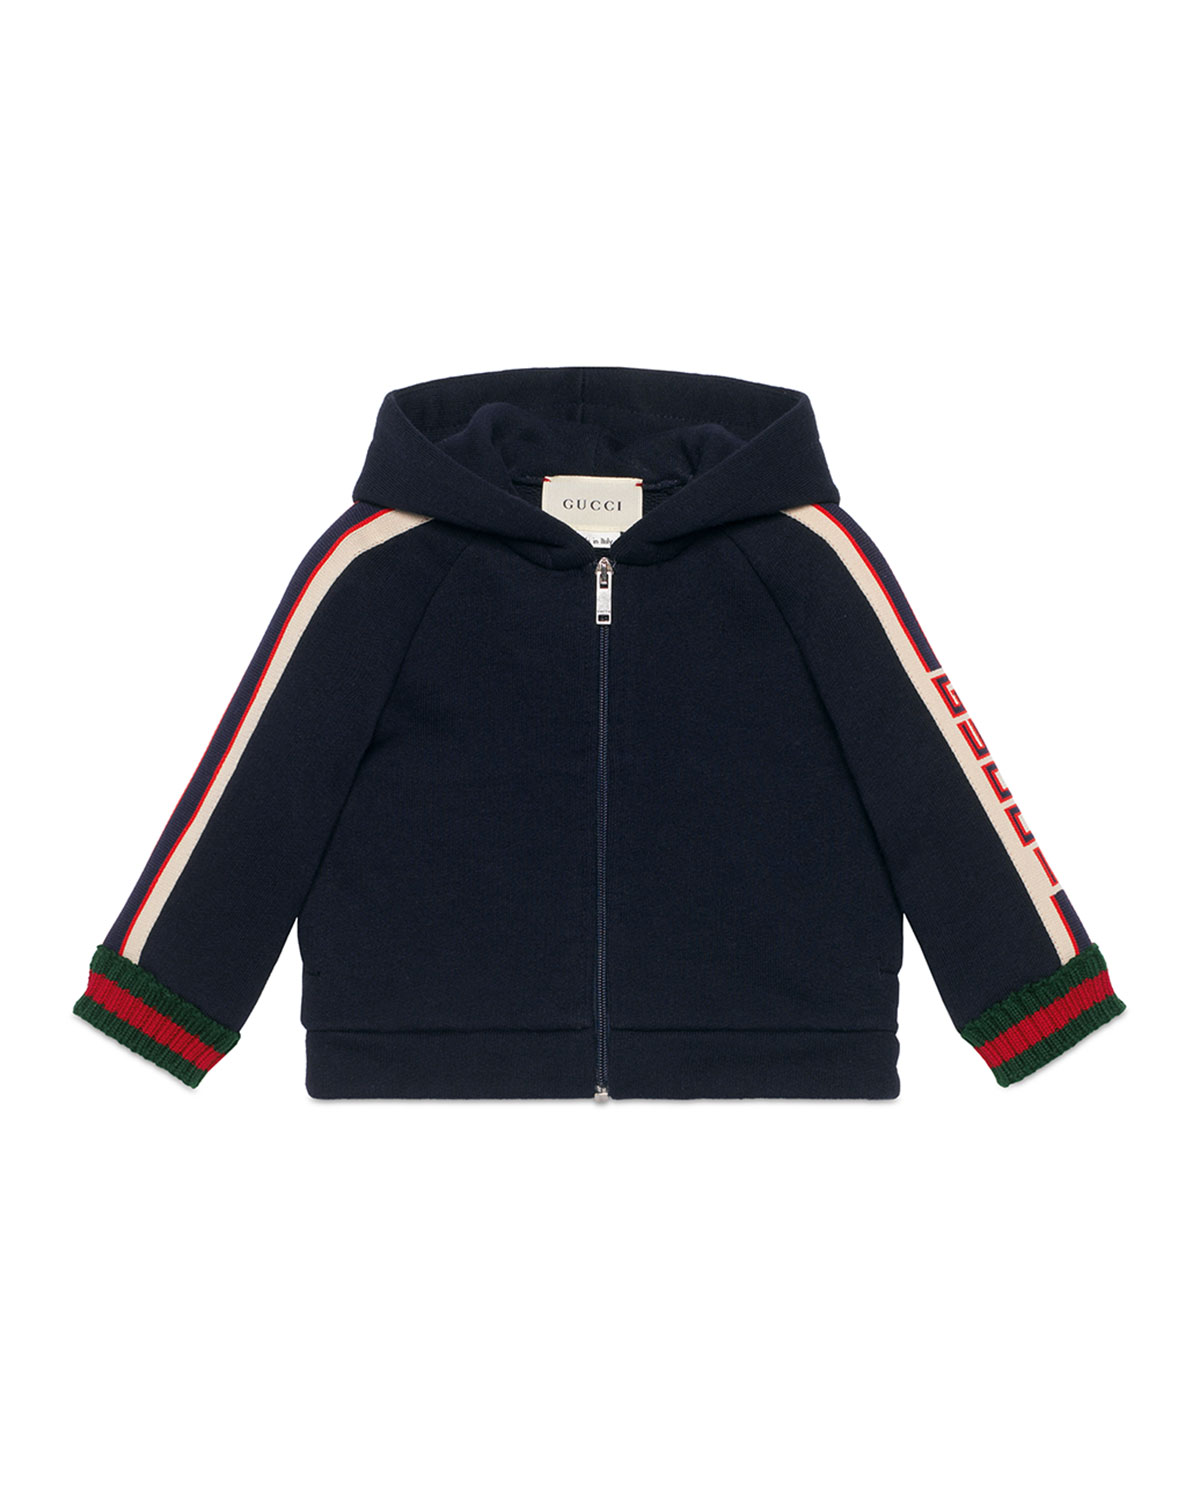 Gucci Hooded Logo Jacquard-Trim Jacket w/ Web Knit Cuffs, Size 6-36 Months